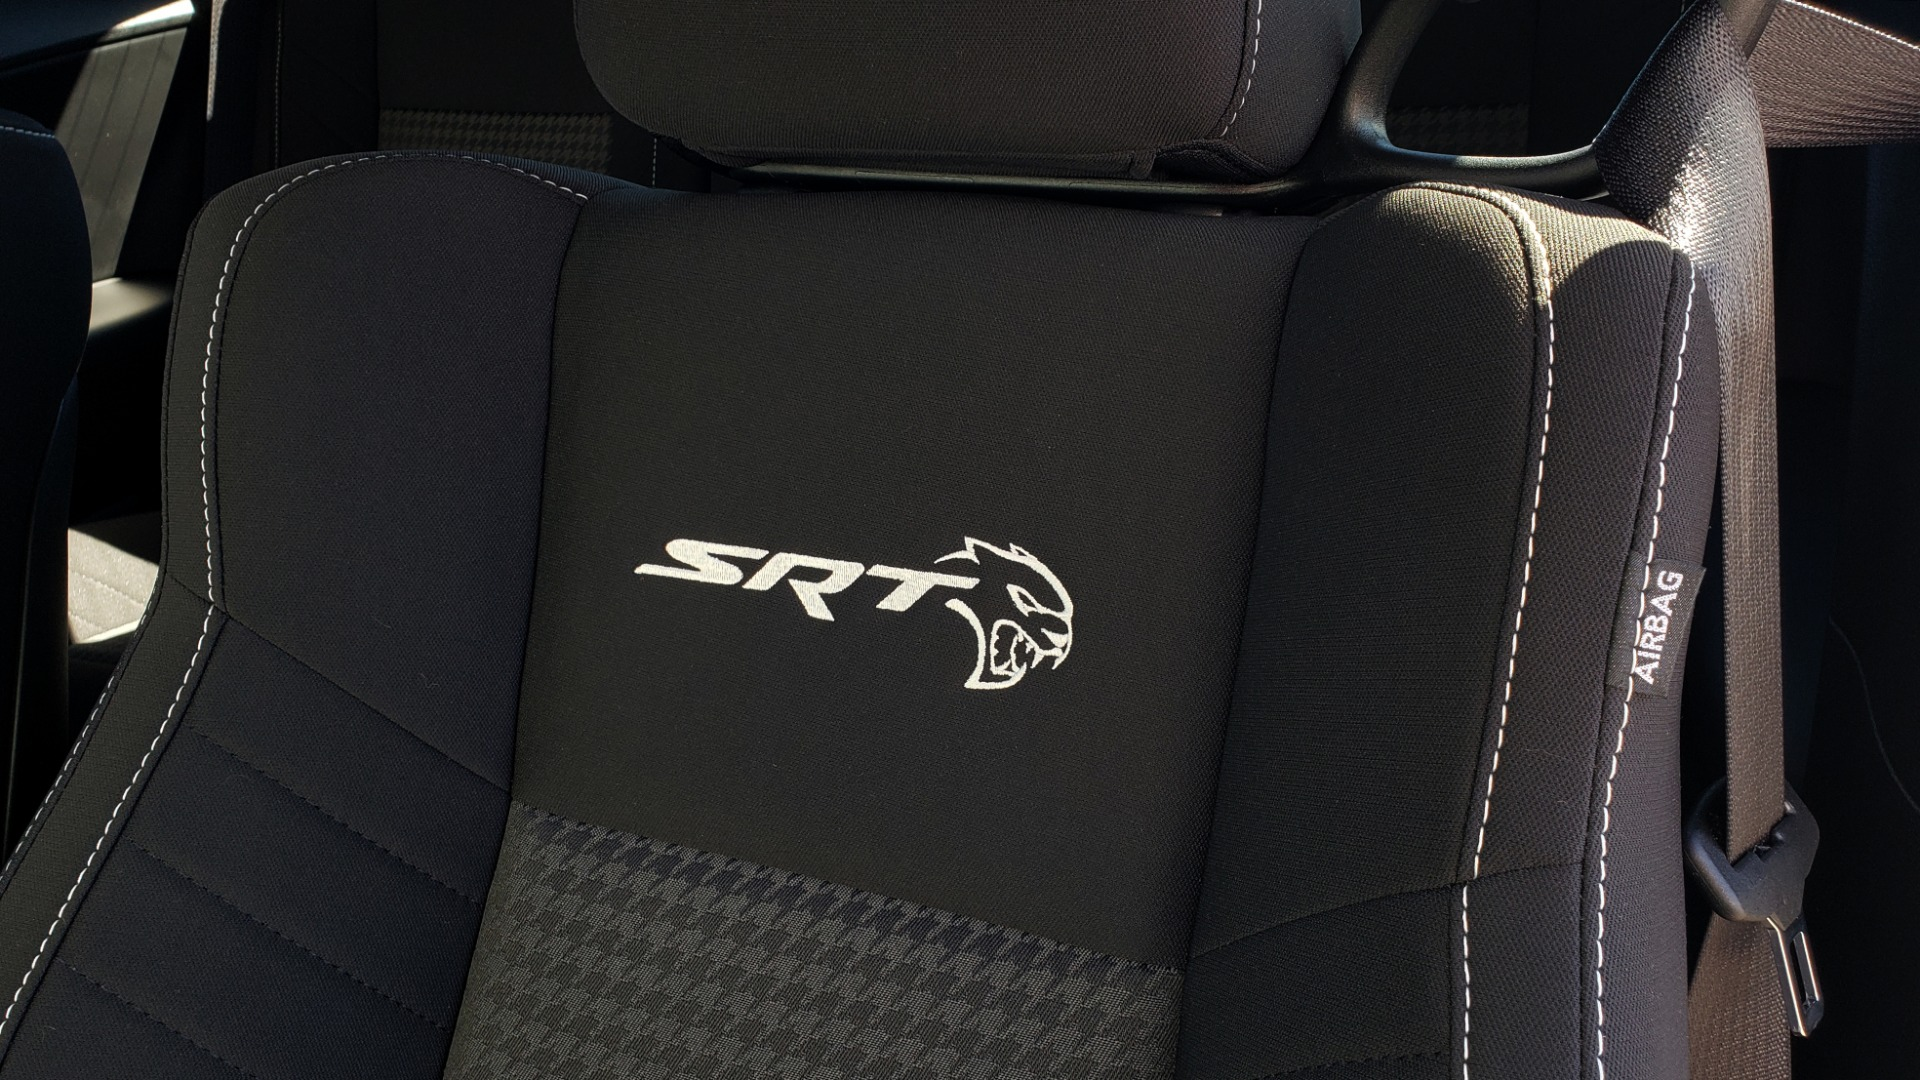 Used 2020 Dodge CHALLENGER SRT HELLCAT (717HP) / NAV / AUTO / CLOTH / REARVIEW / LOW MILES for sale $64,999 at Formula Imports in Charlotte NC 28227 41